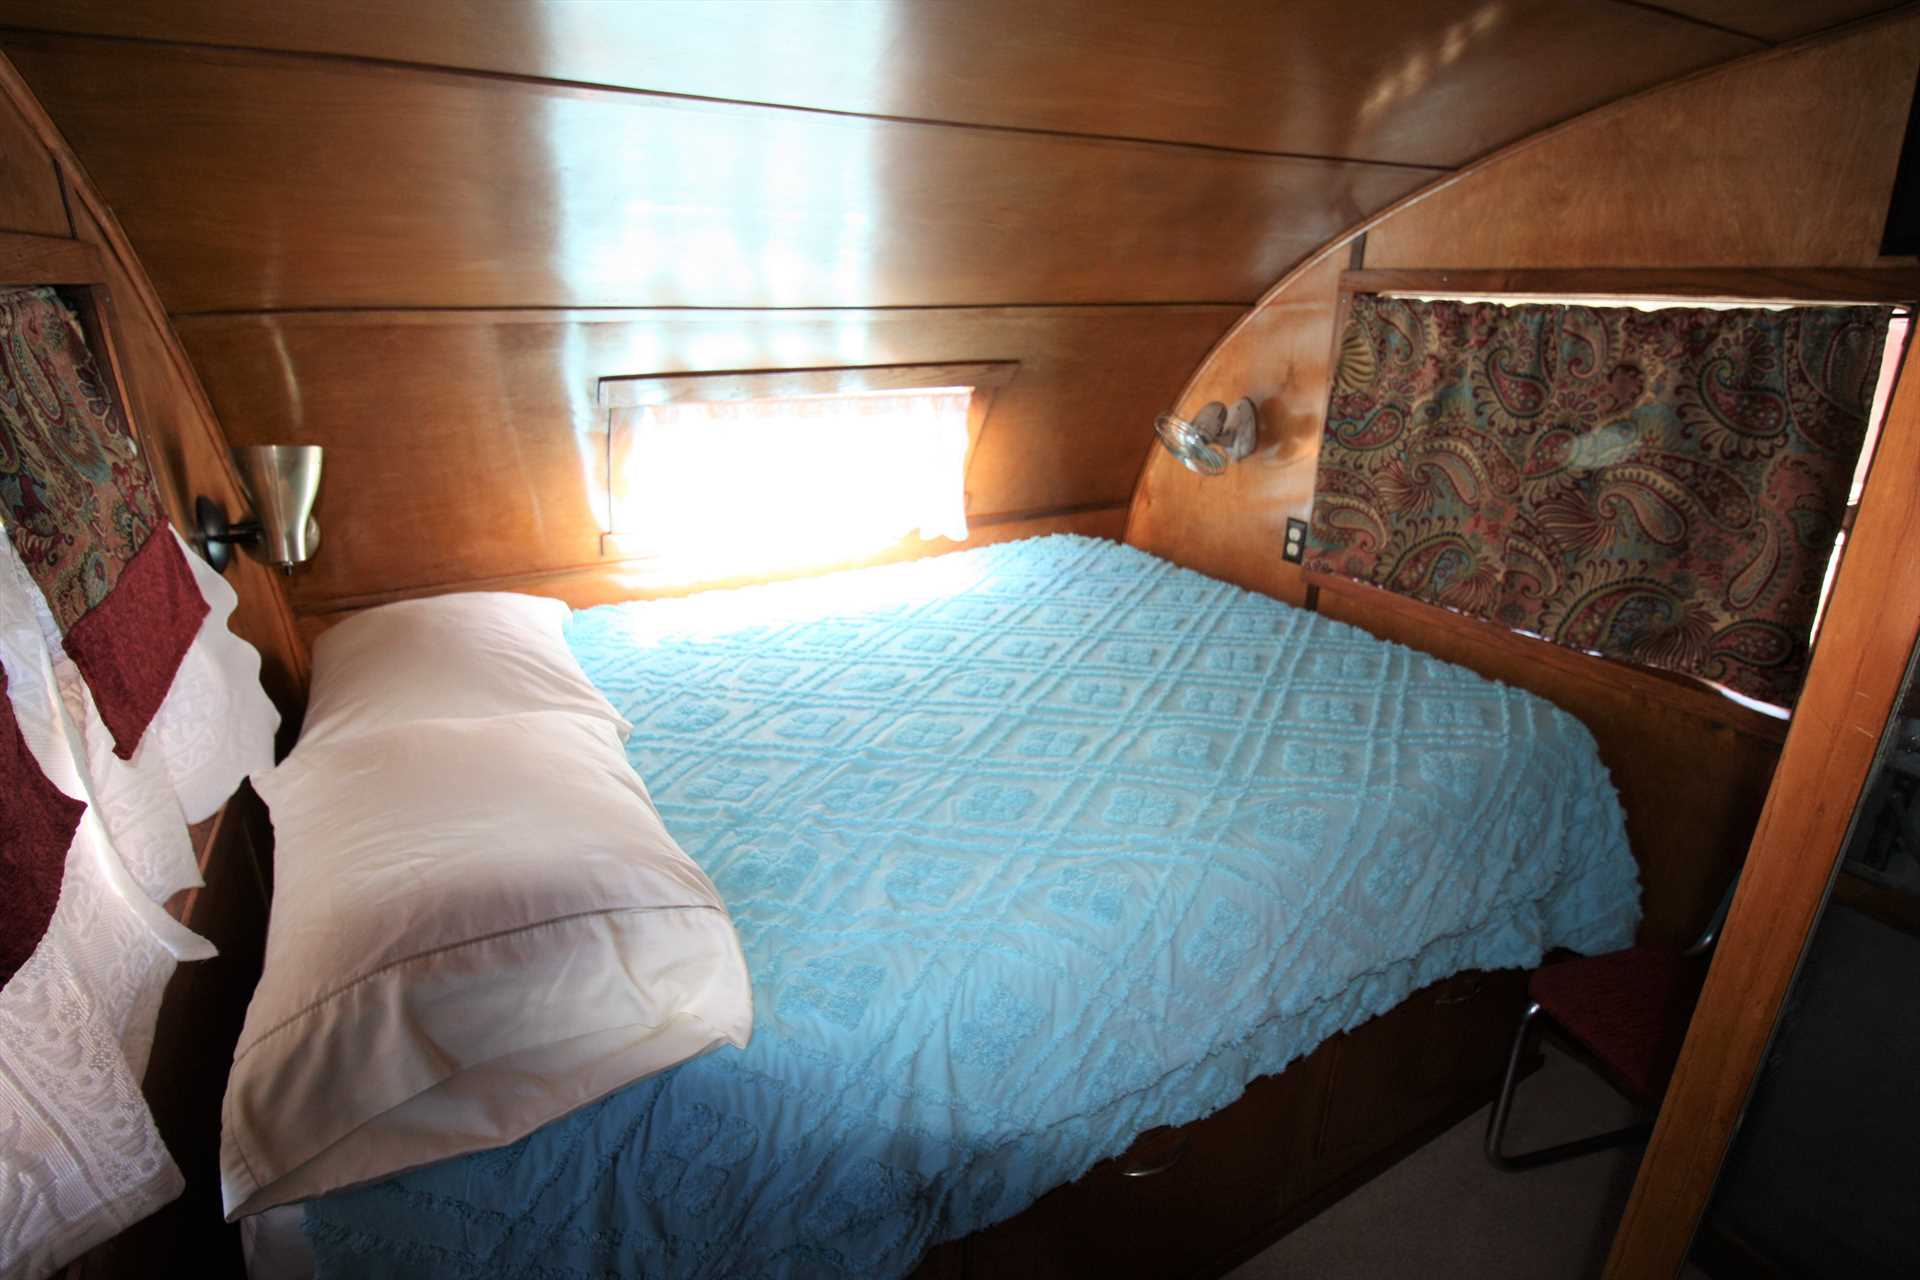 The private bedroom includes a comfy queen-sized bed! Clean bed linens are provided for your stay in this lovingly-refurbished Spartanette trailer coach.